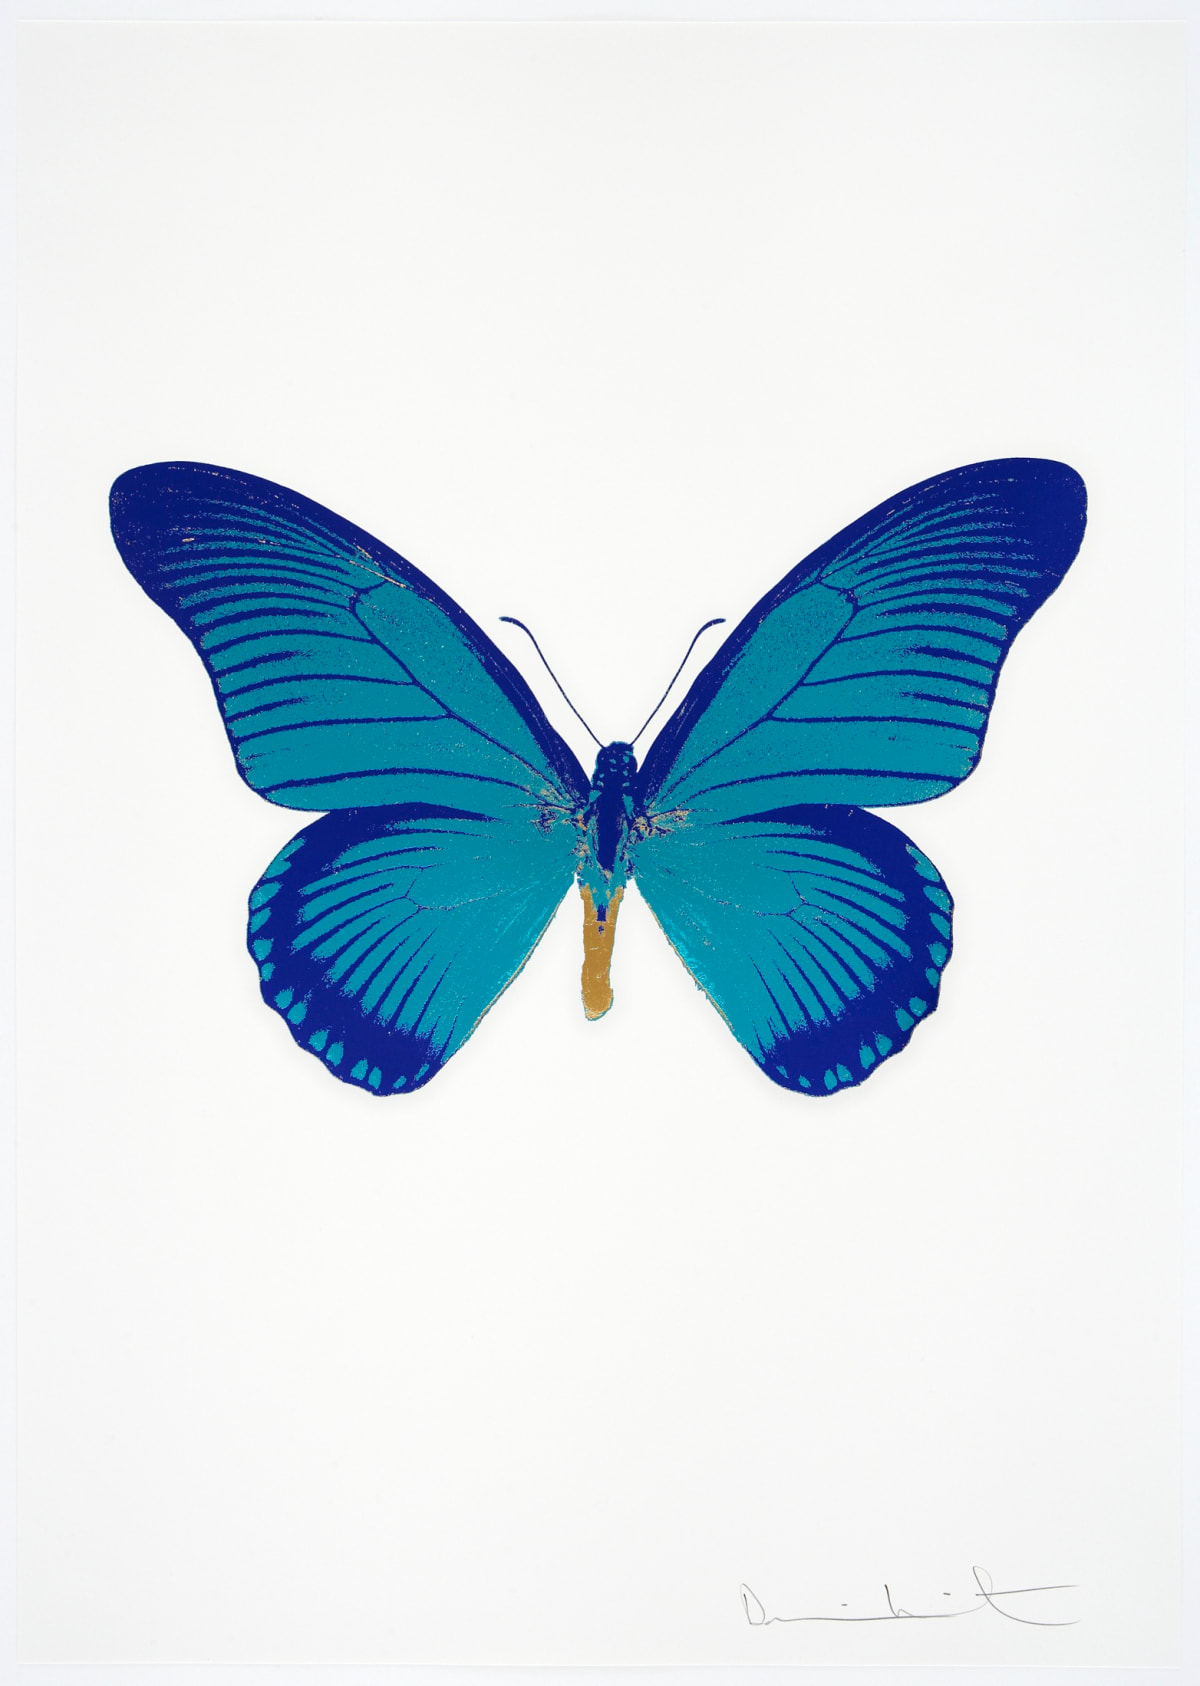 Damien Hirst The Souls IV - Topaz/Westminster Blue/African Gold, 2010 3 colour foil block on 300gsm Arches 88 archival paper. Signed and numbered. Published by Paul Stolper and Other Criteria 72 x 51cm OC8046 / 1418-69 Edition of 15